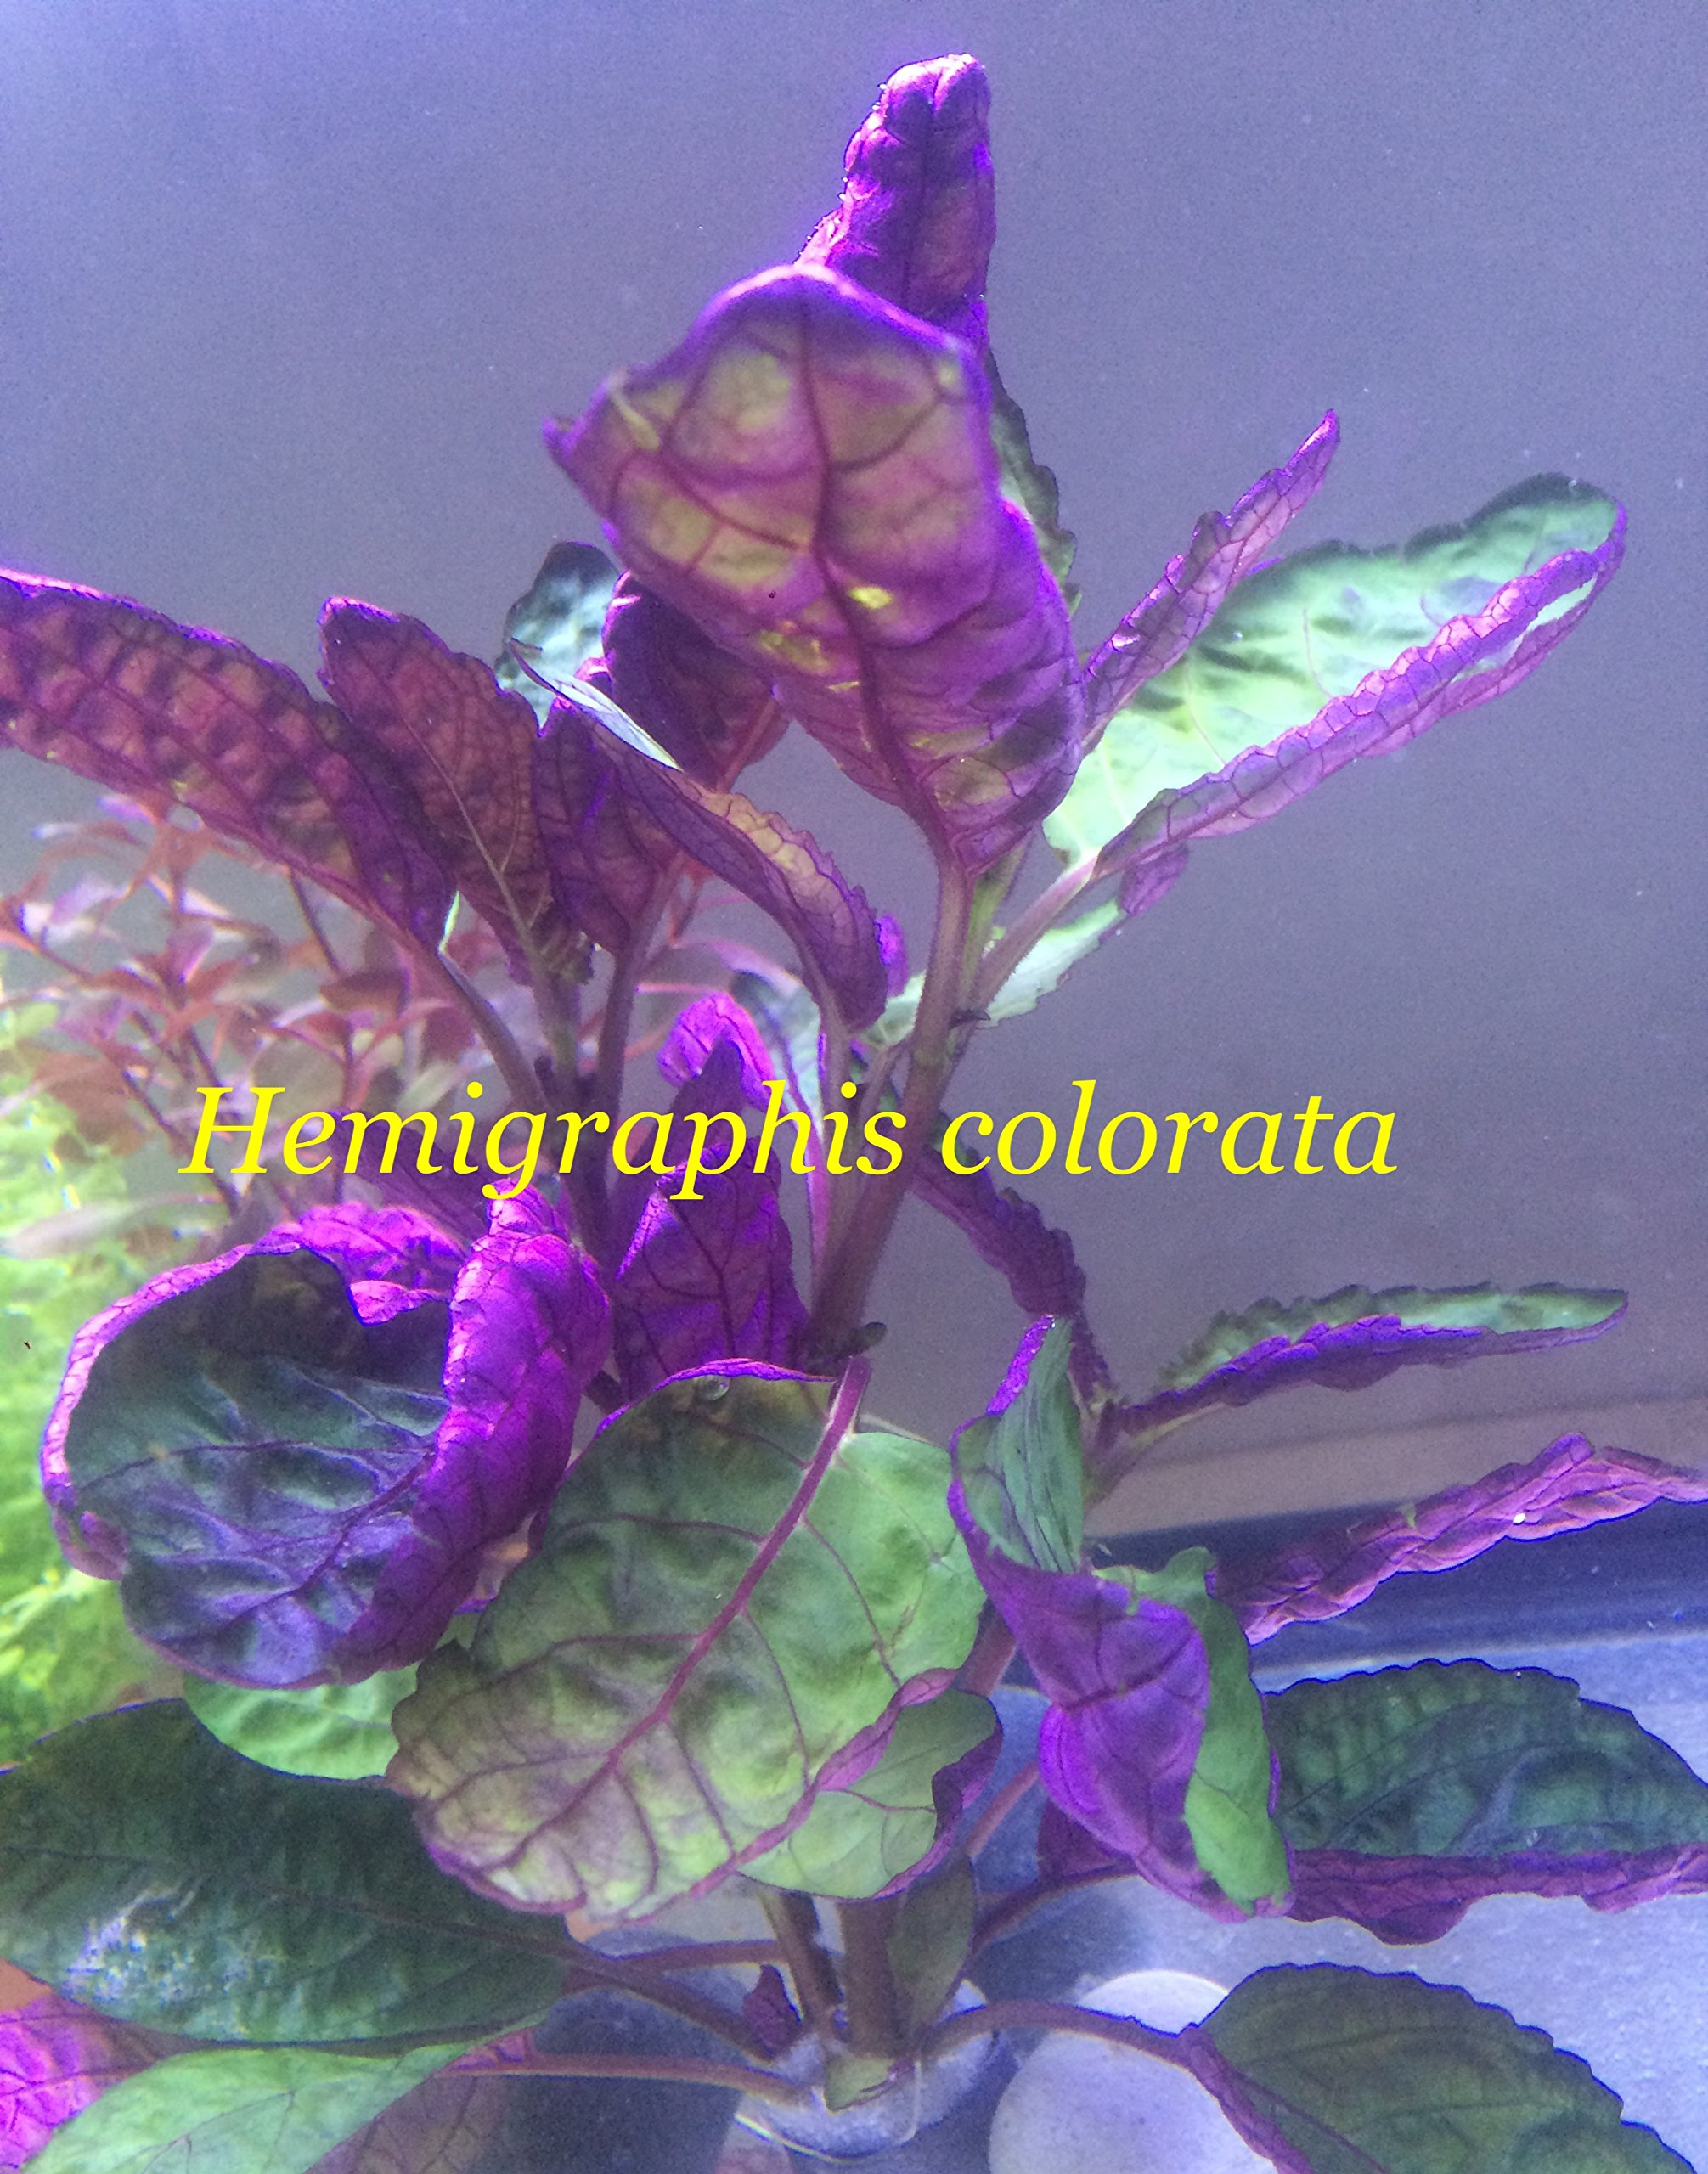 Exotic Live Aquatic Plant for Fresh Water Hemigraphis colorata Bundle B066 By Jyco **Buy 2 GET 1 Free by Jayco (Image #1)